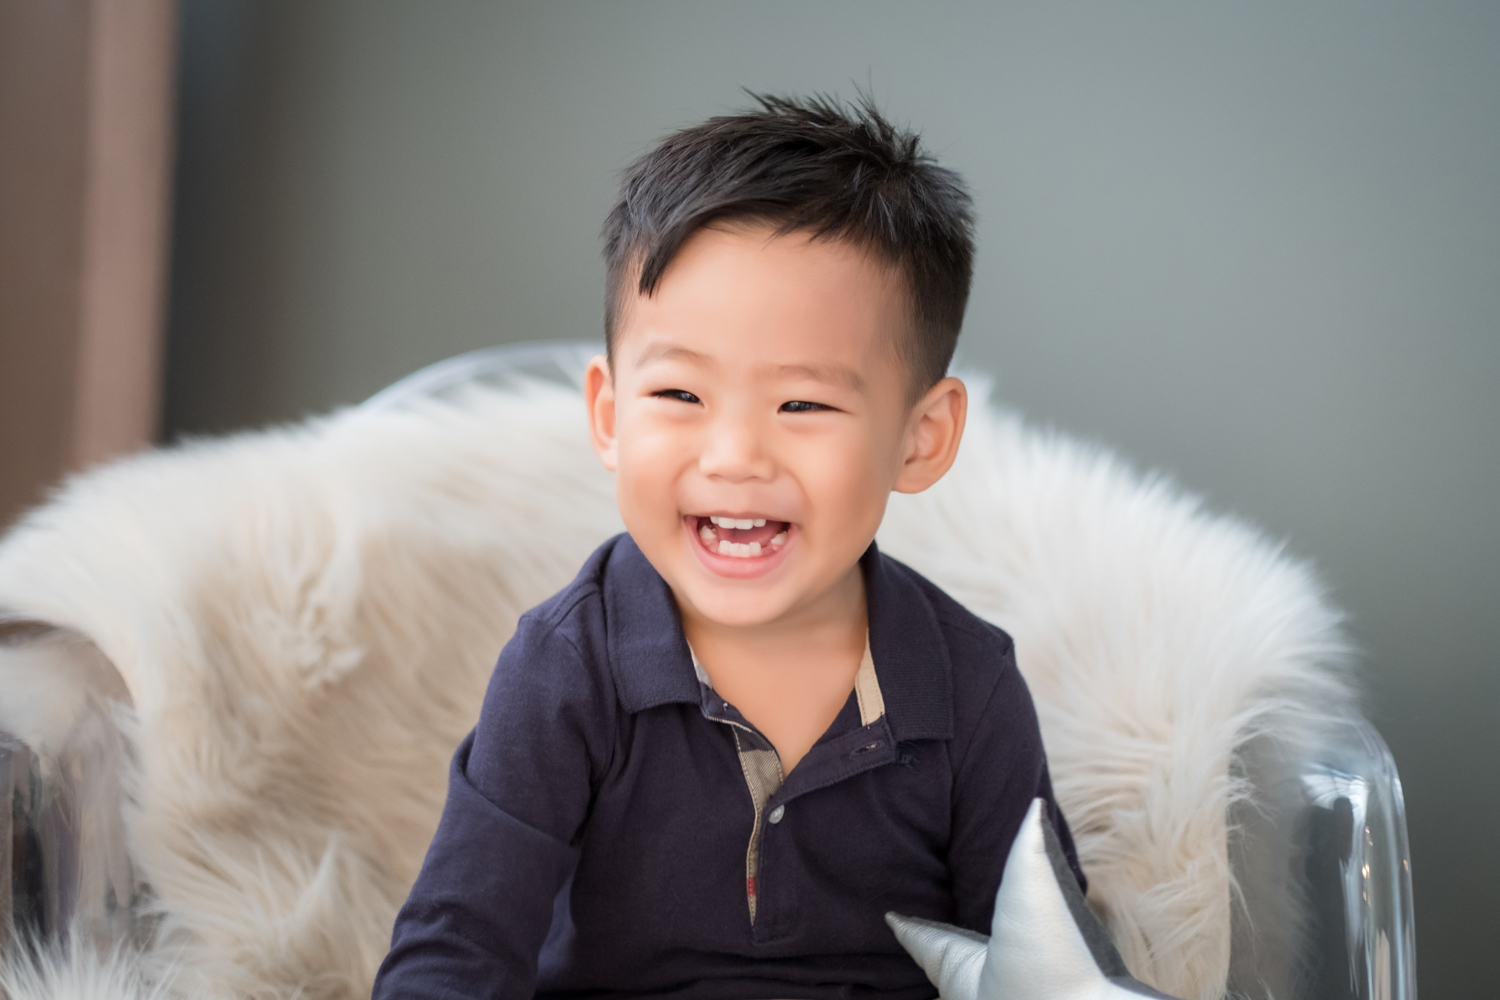 Korean toddler smiles during a family photo session.